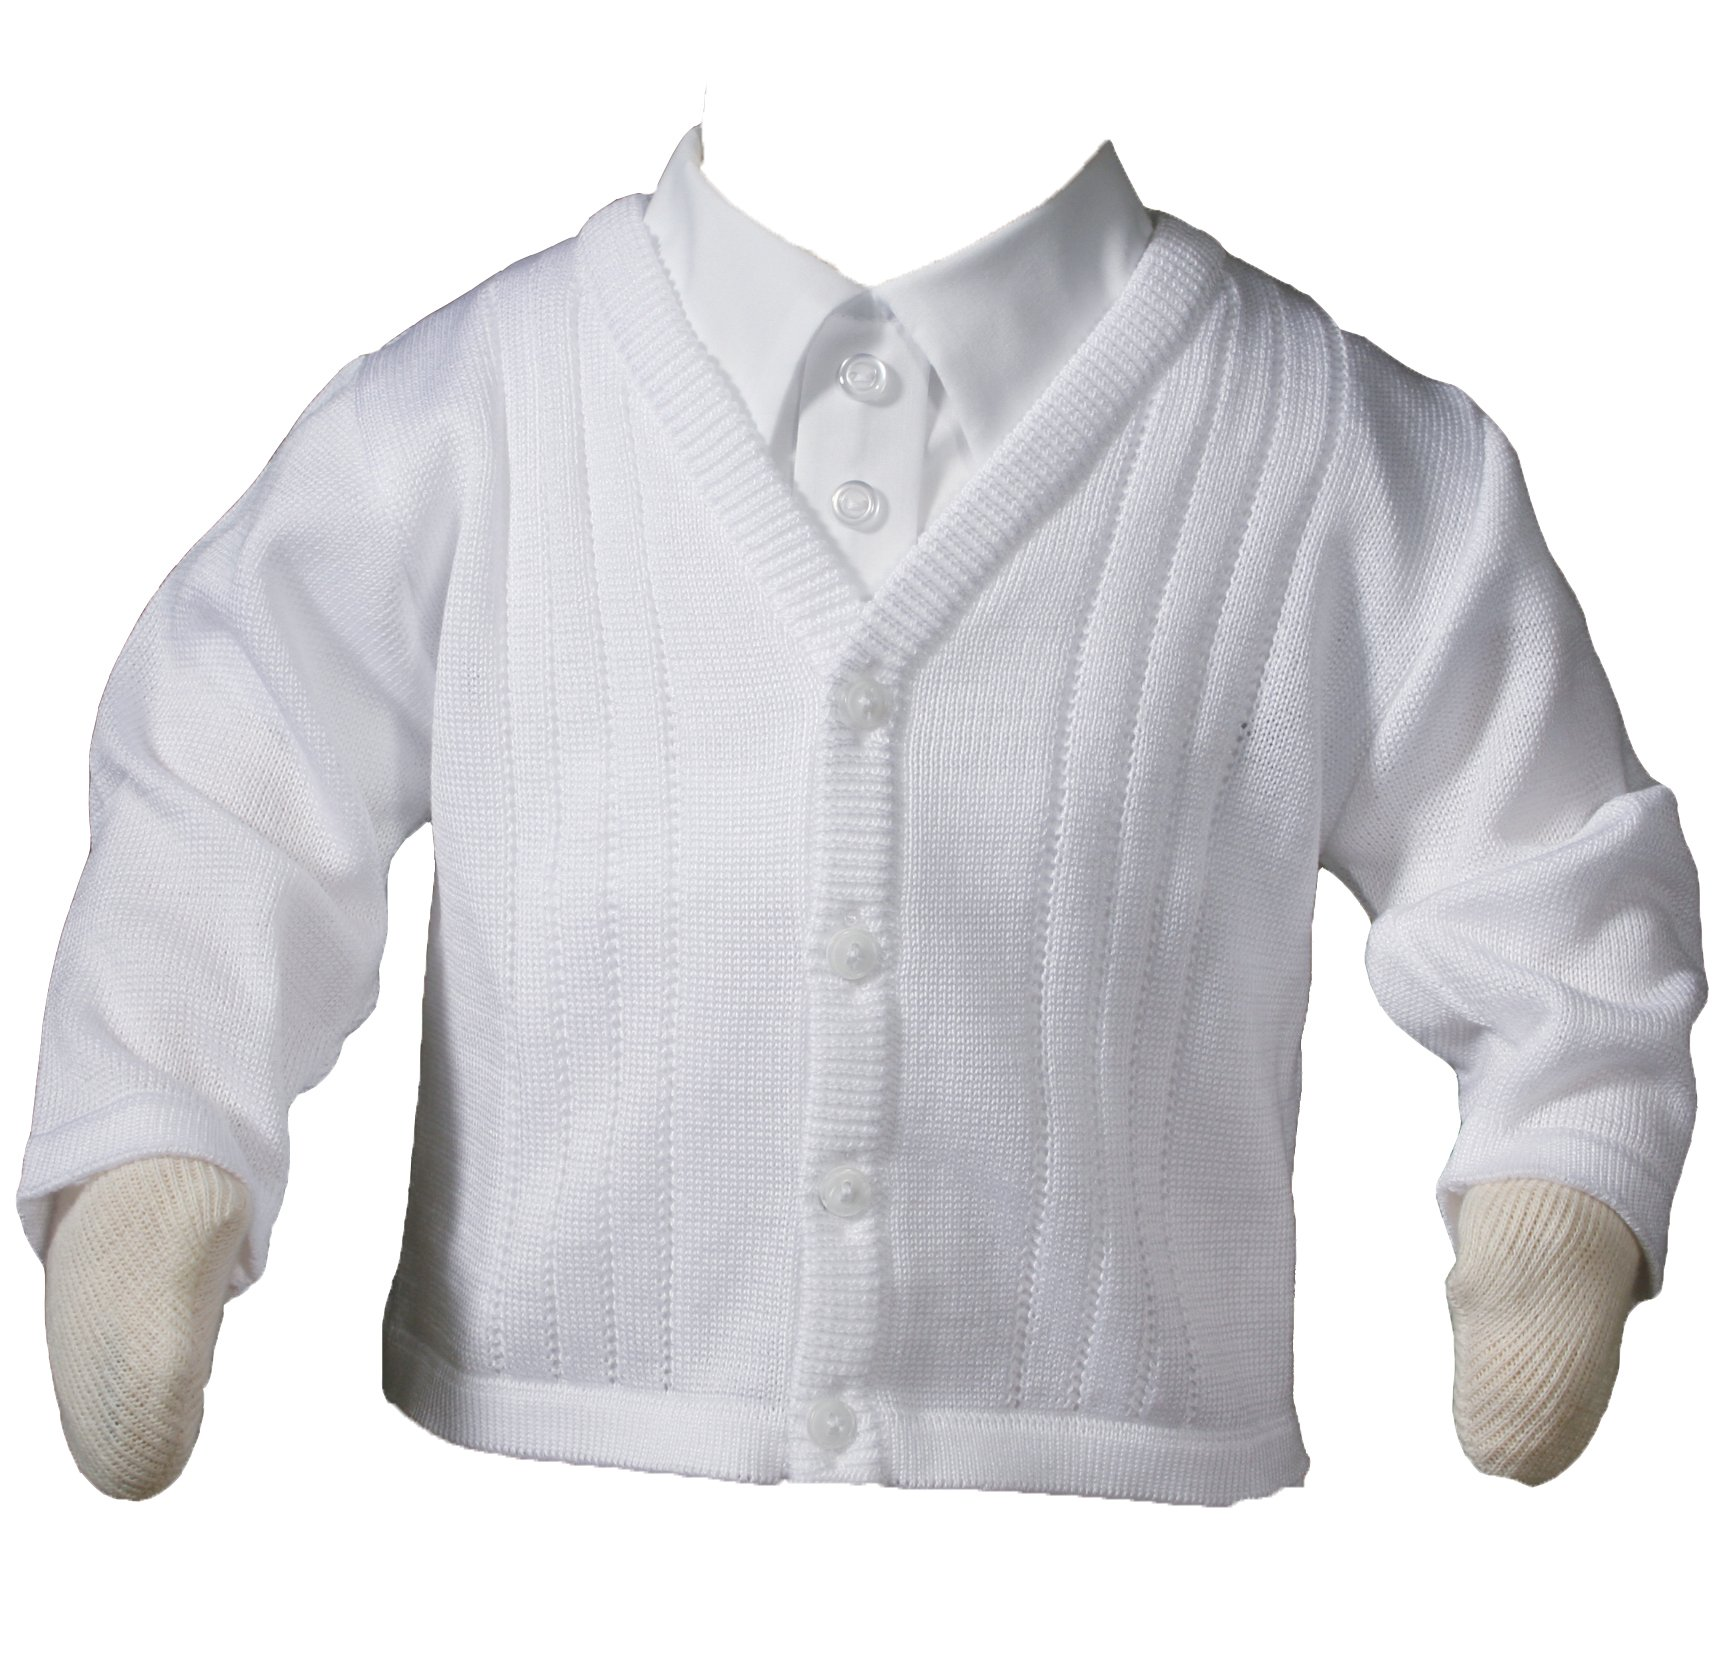 Little Things Mean A Lot Boys Everett Acrylic Sweater Size 24 Months White by Little Things Mean A Lot